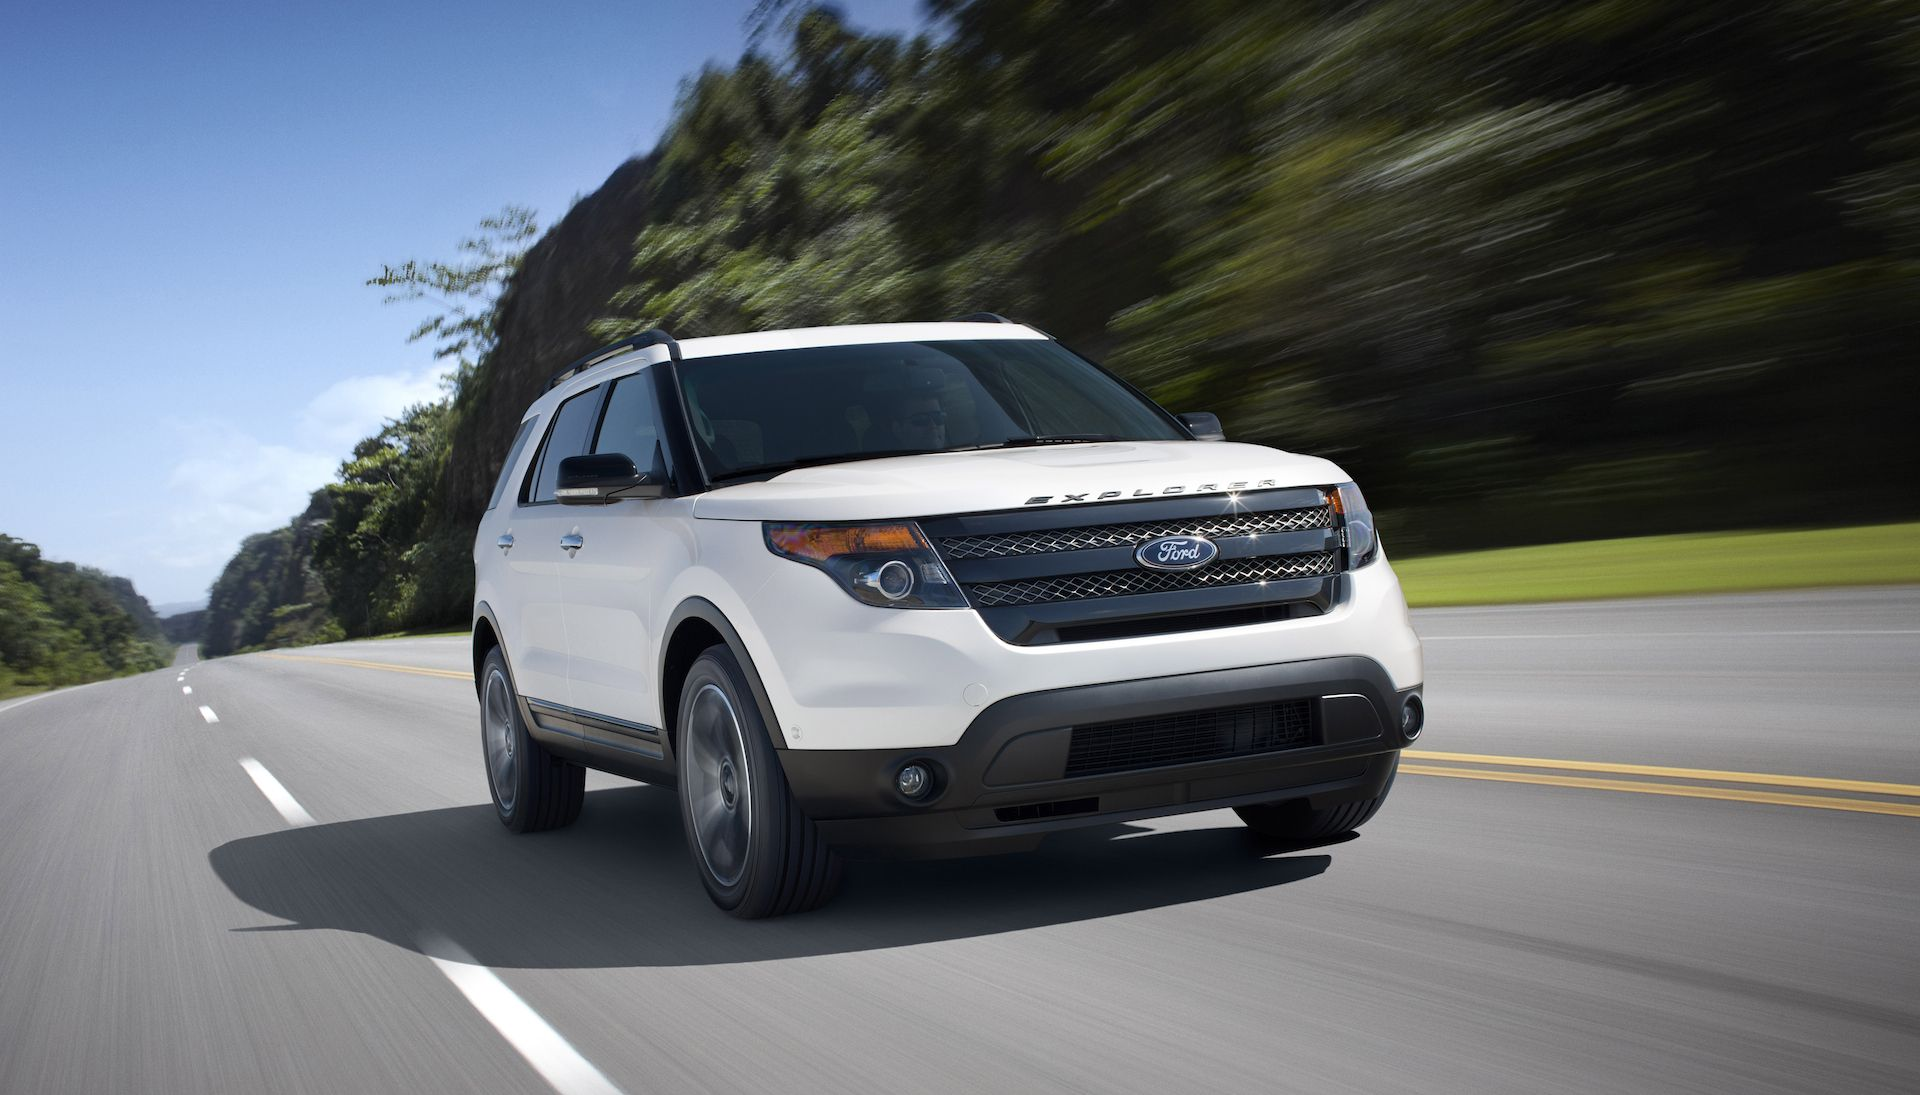 2015 Ford Explorer Review, Specs and Engine 2015 Ford